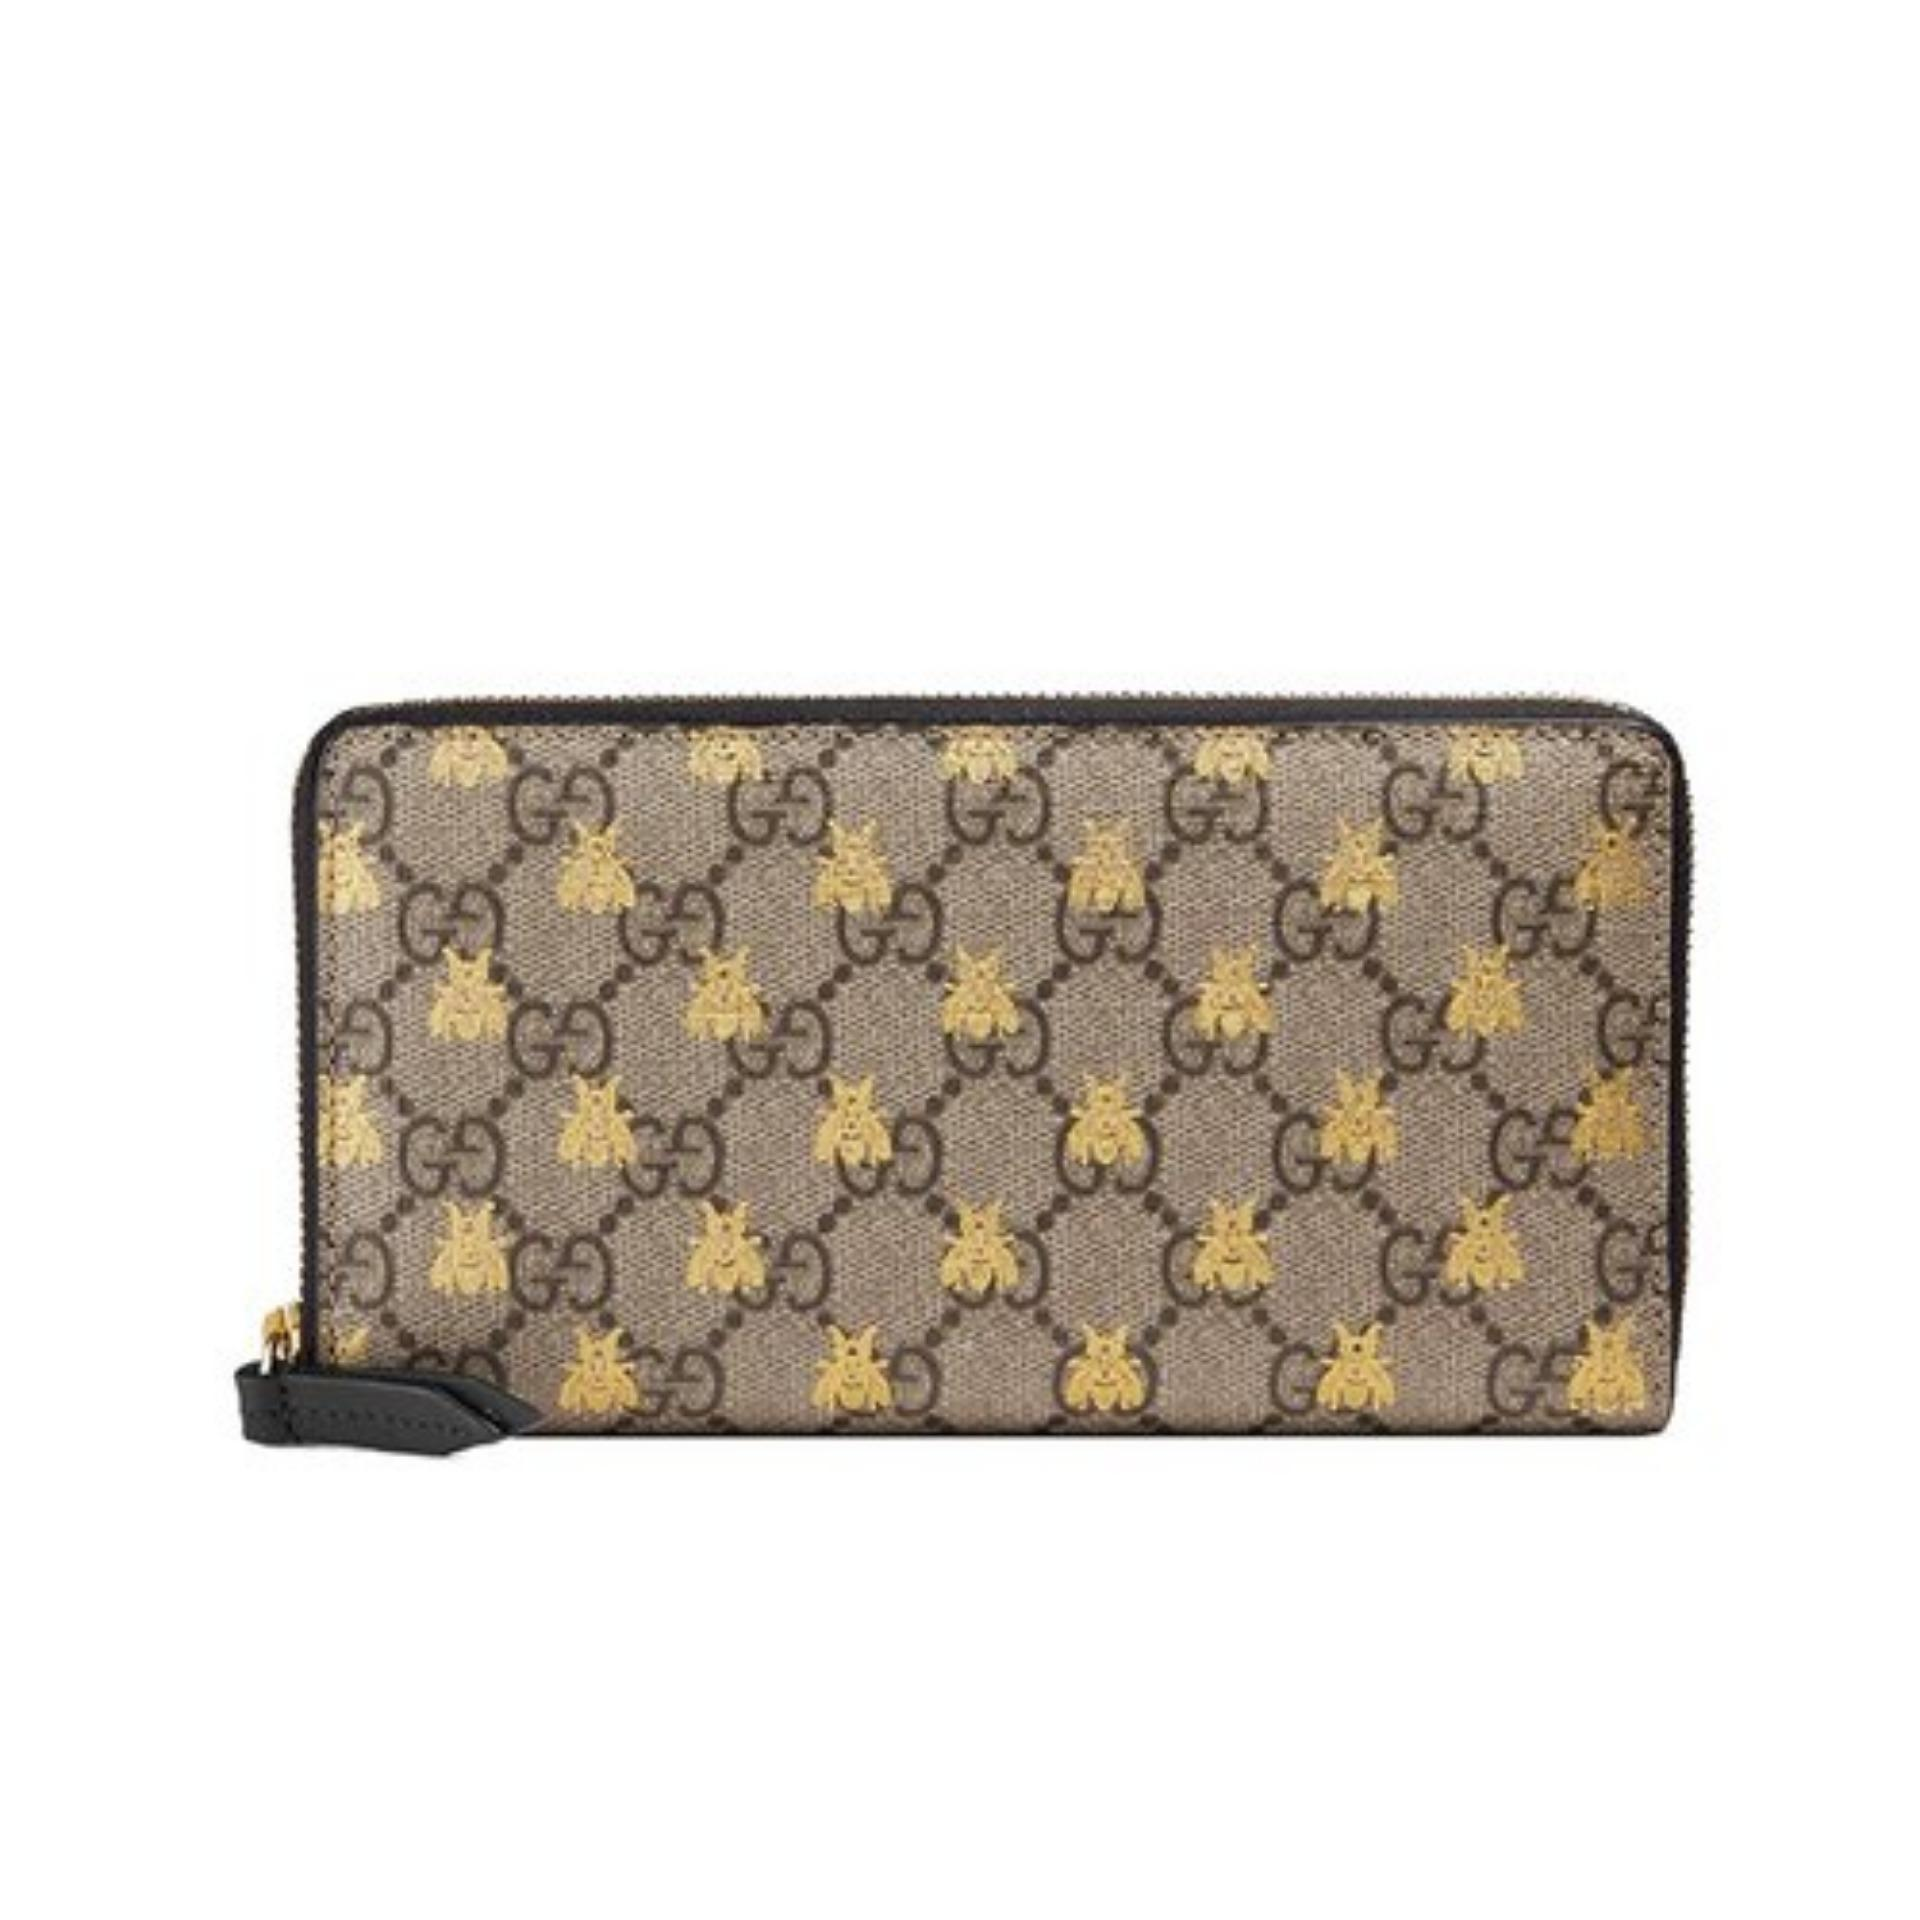 1e58ee5827a Gucci GG Supreme Bees Zip Around Wallet (Beige)   4101029F26G8319